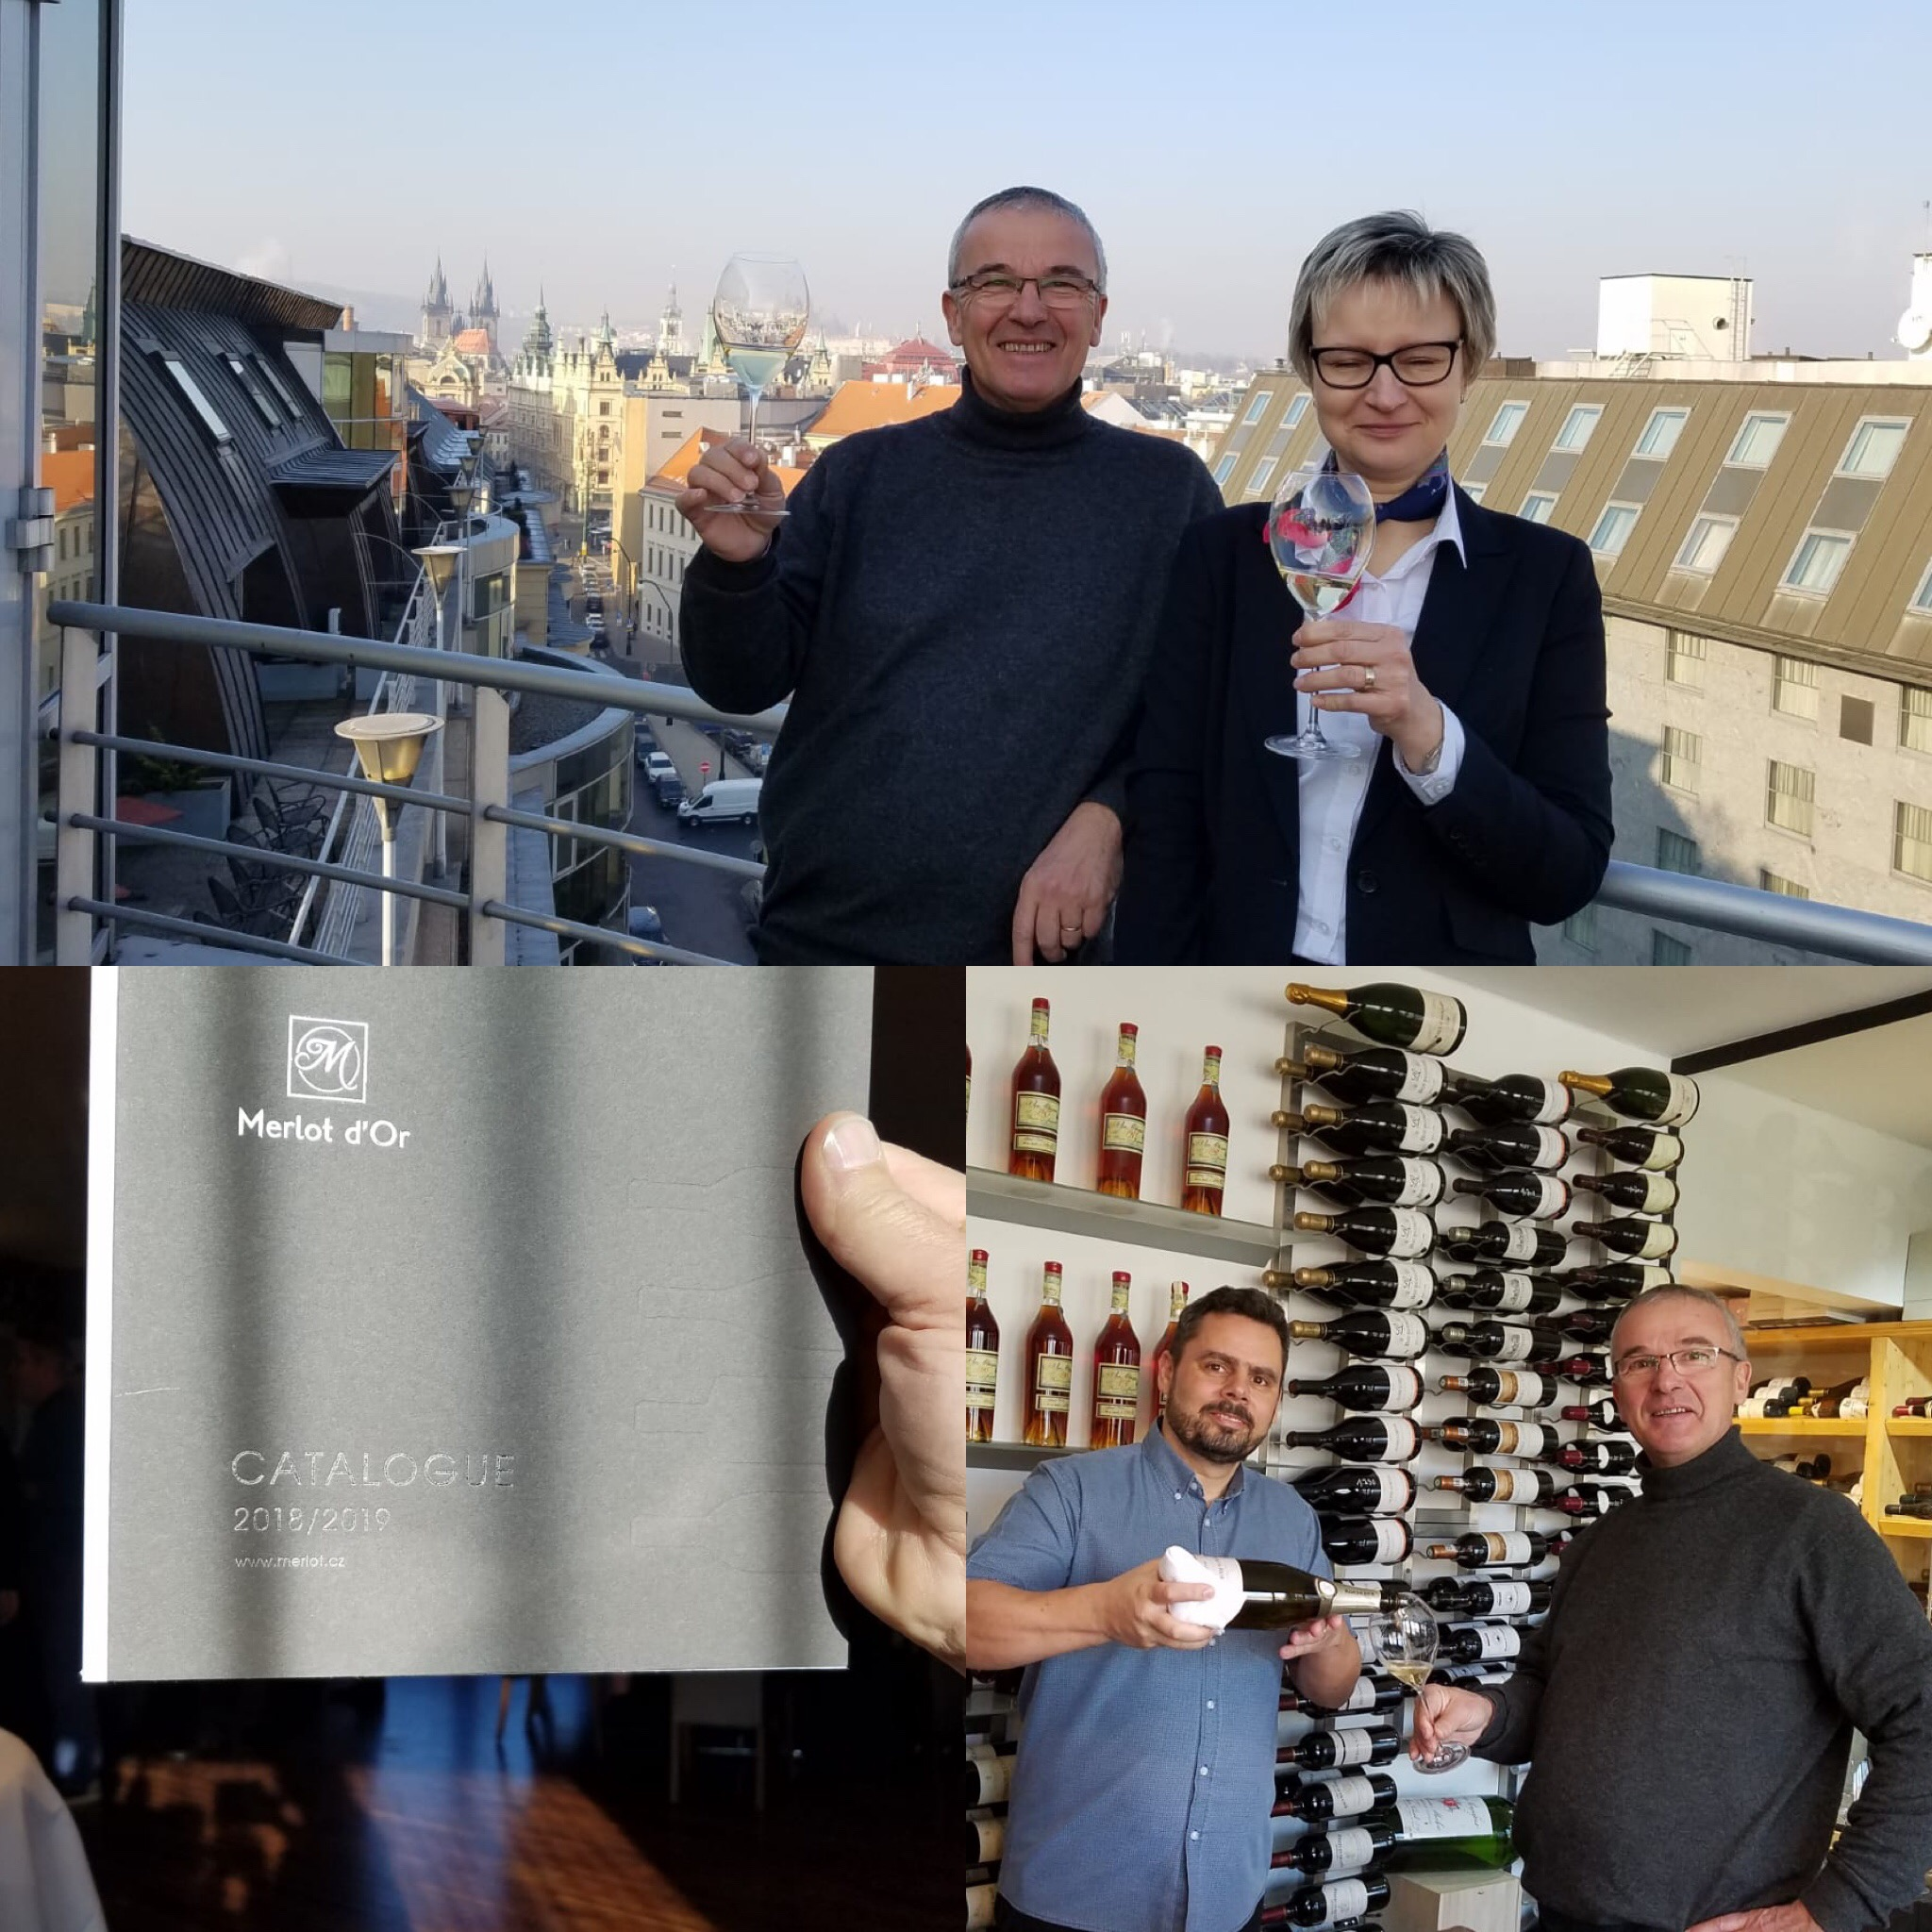 Visit to the Merlot d'Or wine store in Prague 